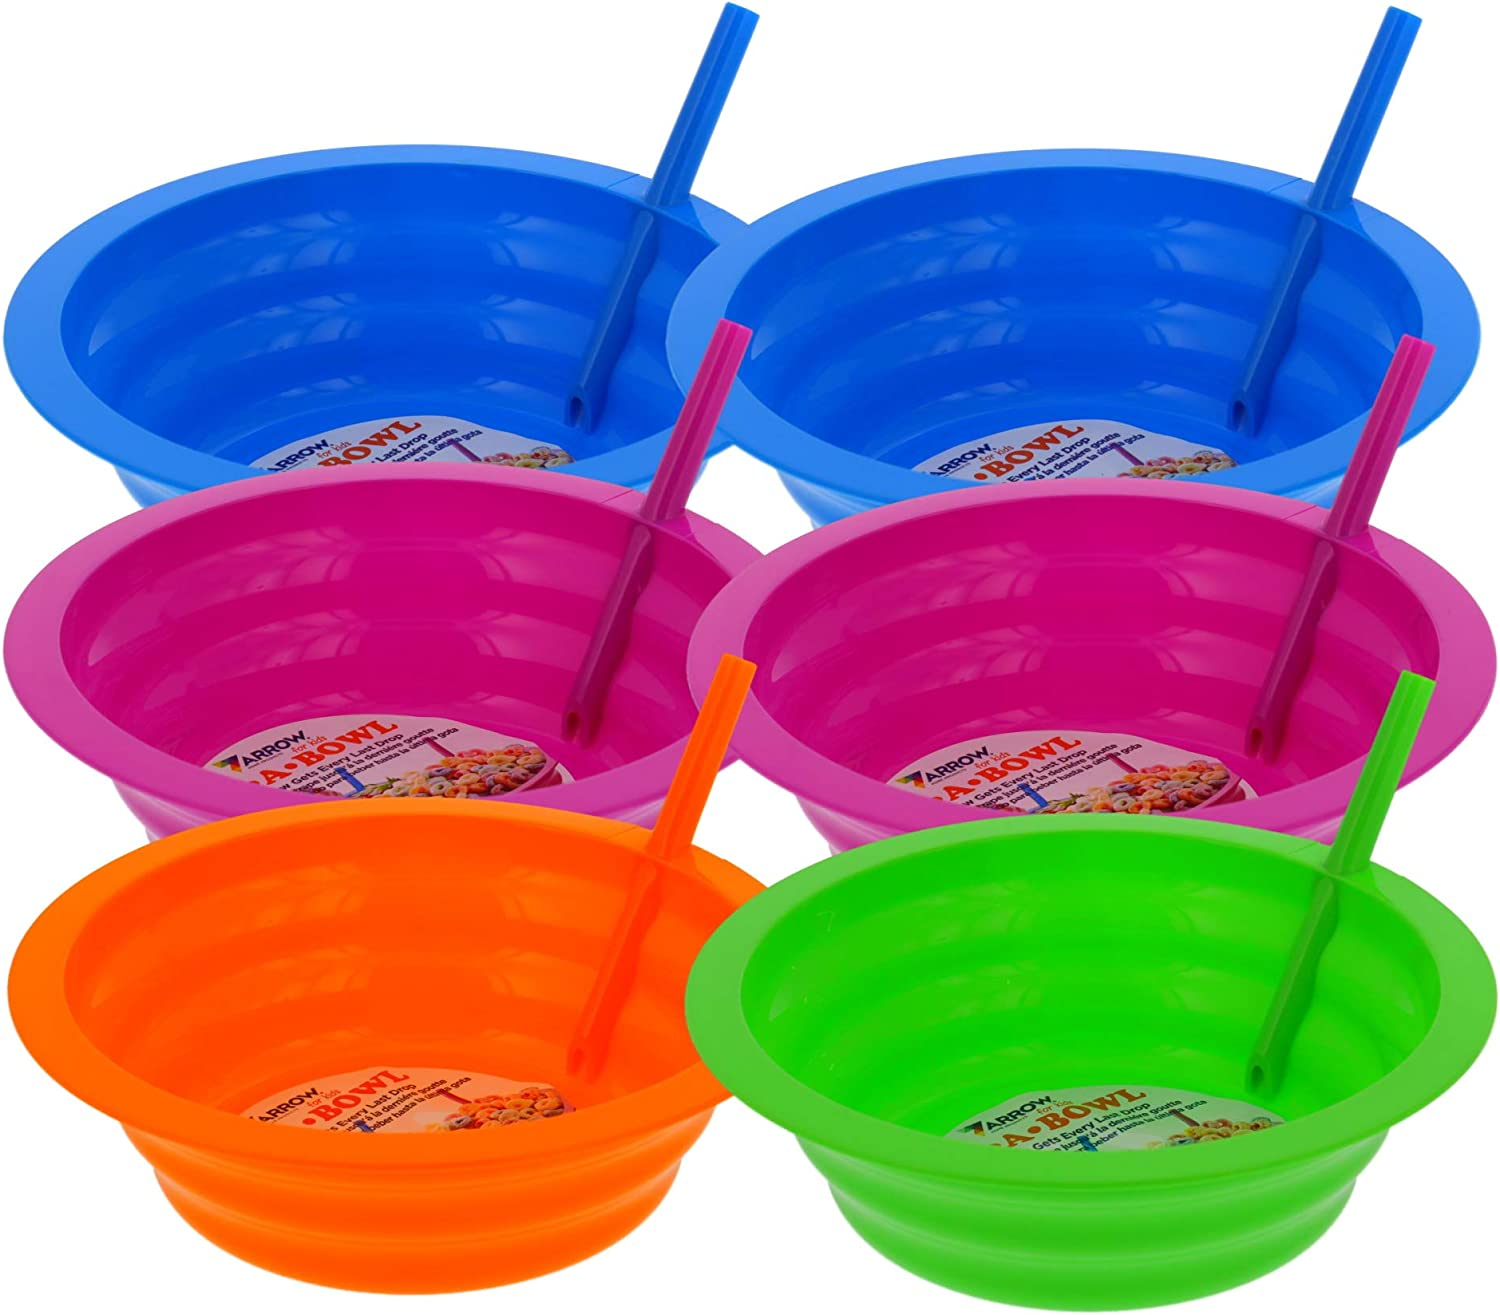 Arrow Sip-A-Bowl with Built-In Straw Sale SALE% OFF 22oz BPA F - Max 63% OFF Bowl Set 6pk